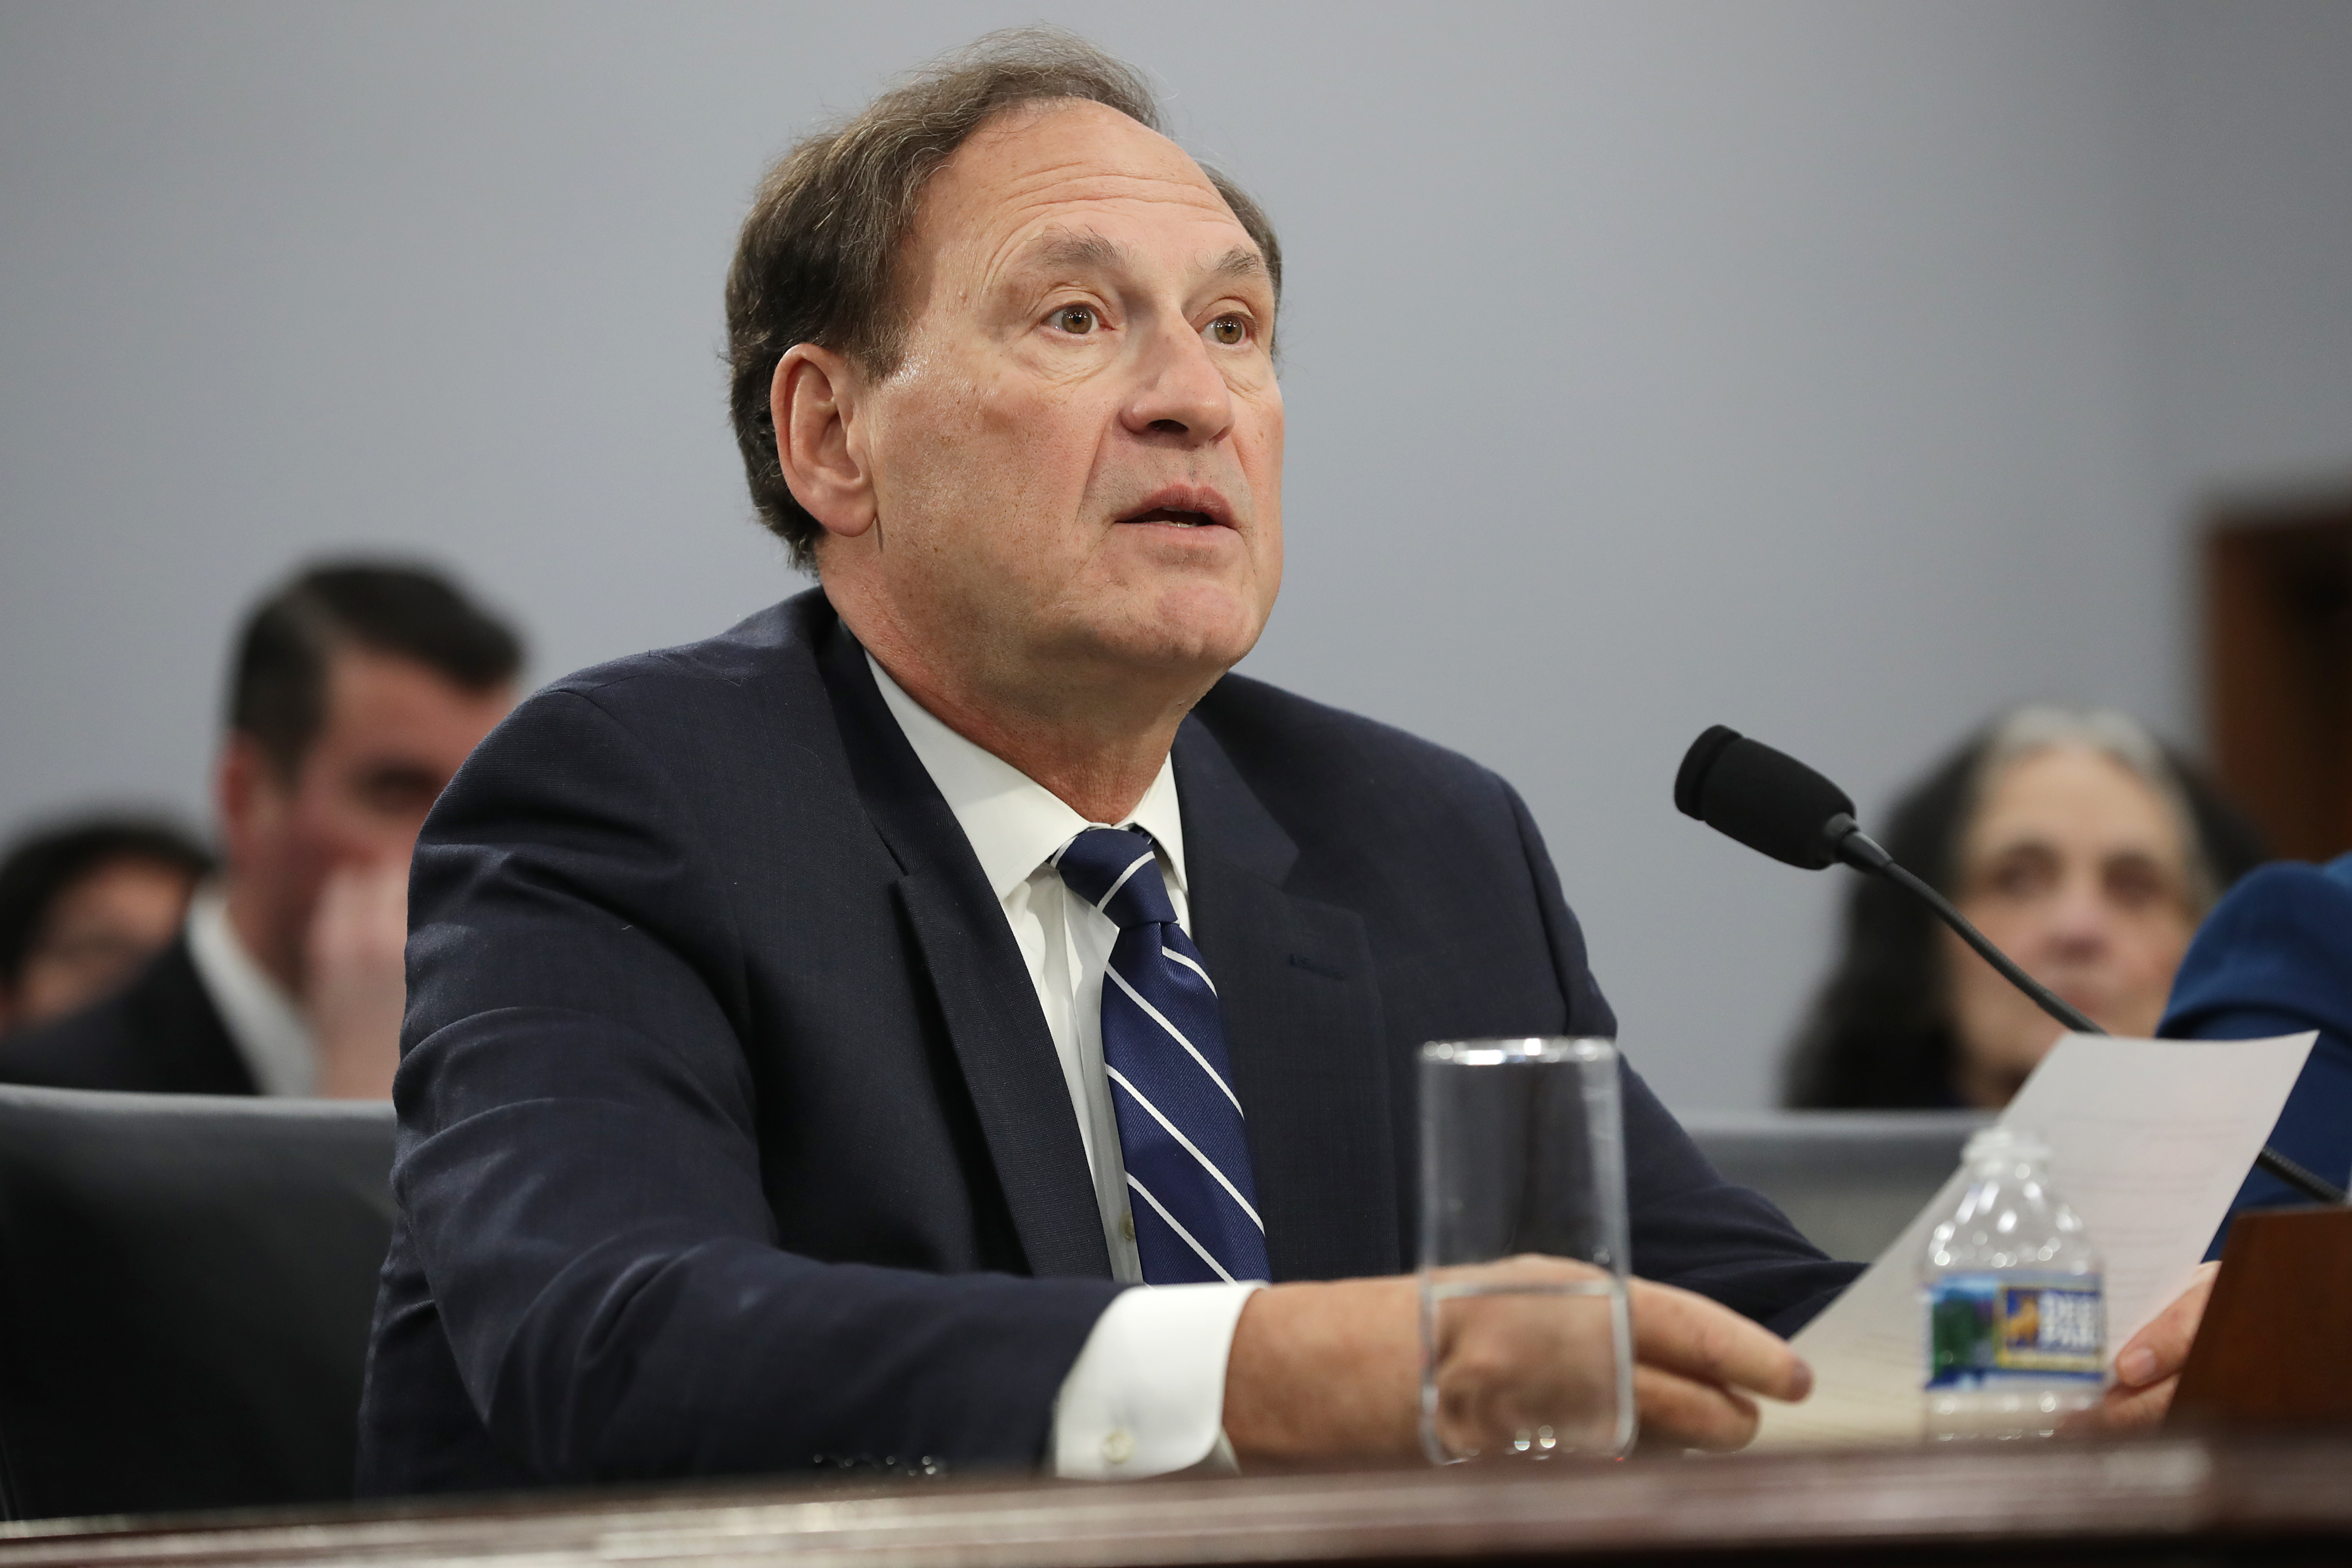 Justice Samuel Alito testifies about the Supreme Court's budget during a hearing of the House Appropriations Committee on March 7, 2019. (Chip Somodevilla/Getty Images)